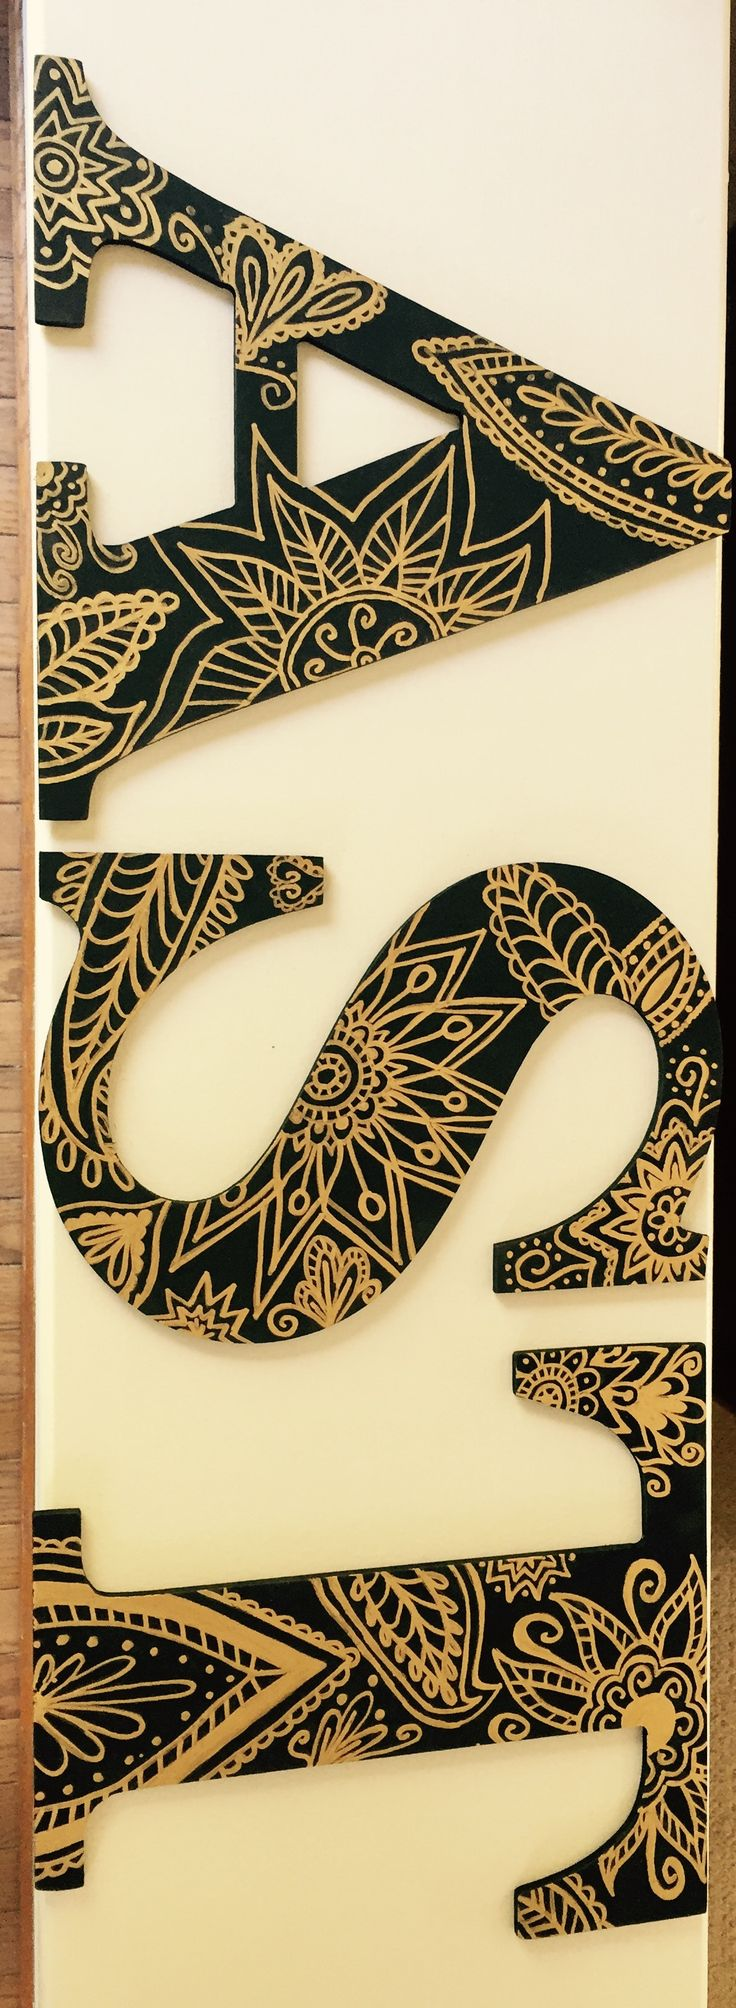 If someone is super talented and can do these like a red and white (or green/gold) bandanna style letters and then get the chapter matching bandannas (can also give out at bid day to new members, so they can match too)